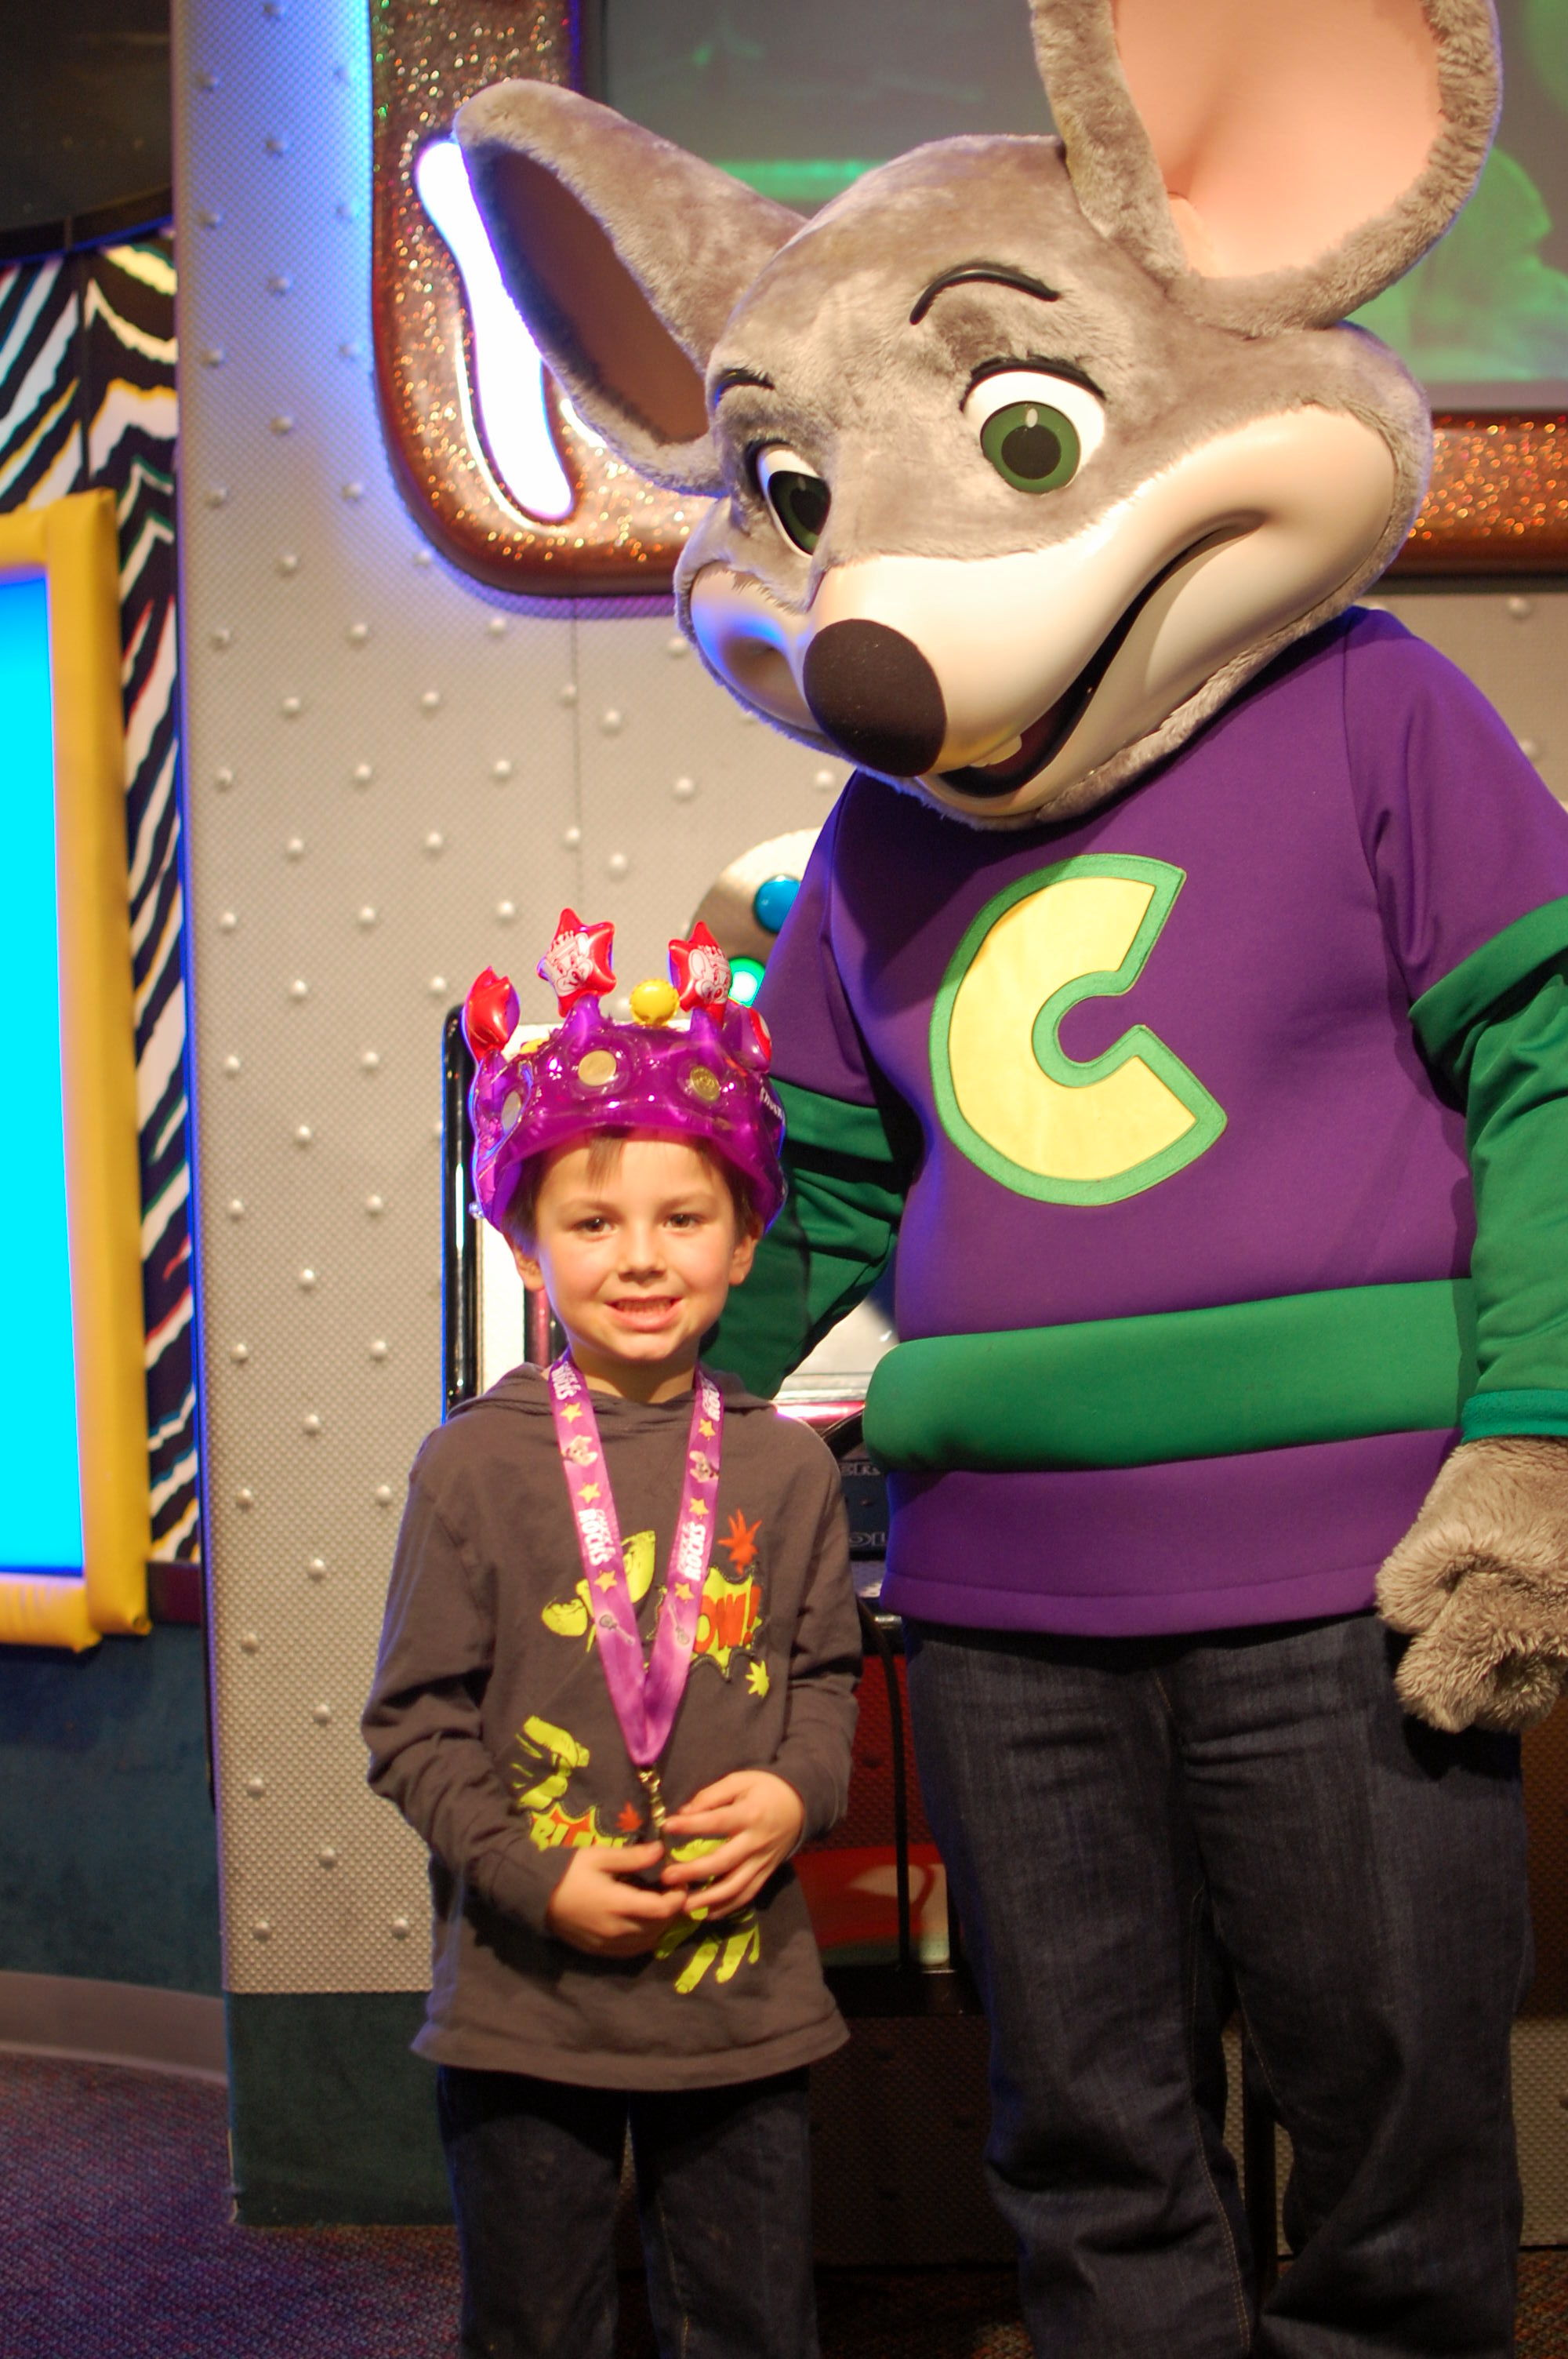 Chuck E Cheese Costume 2013